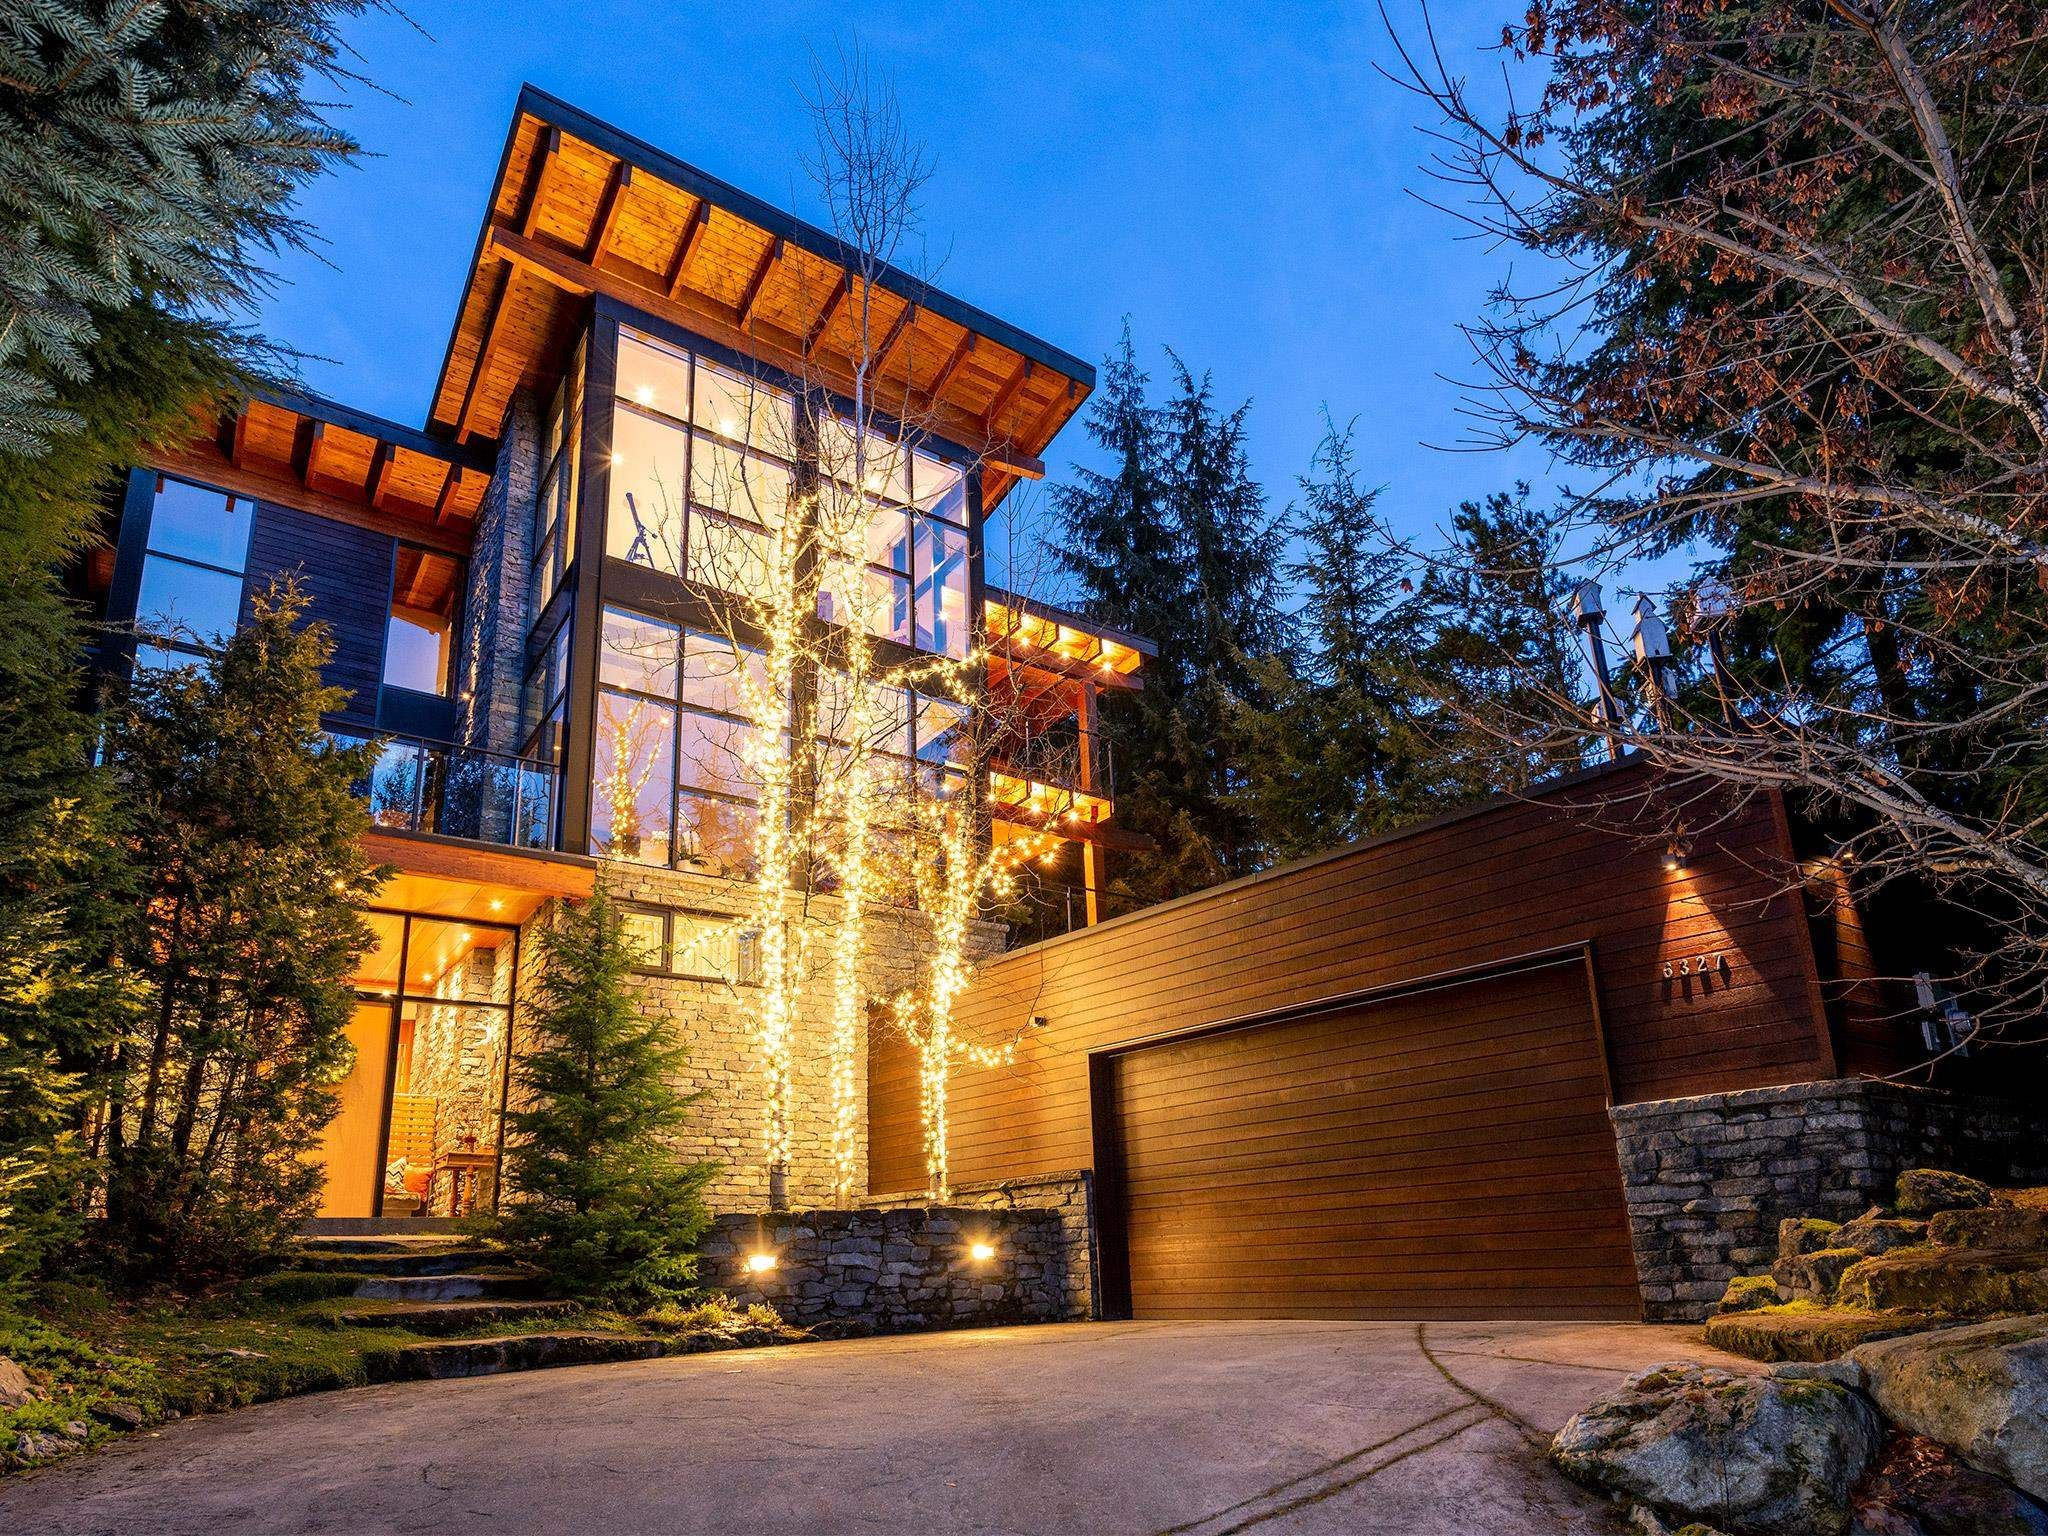 Main Photo: 6327 FAIRWAY Drive in Whistler: Whistler Cay Heights House for sale : MLS®# R2613500